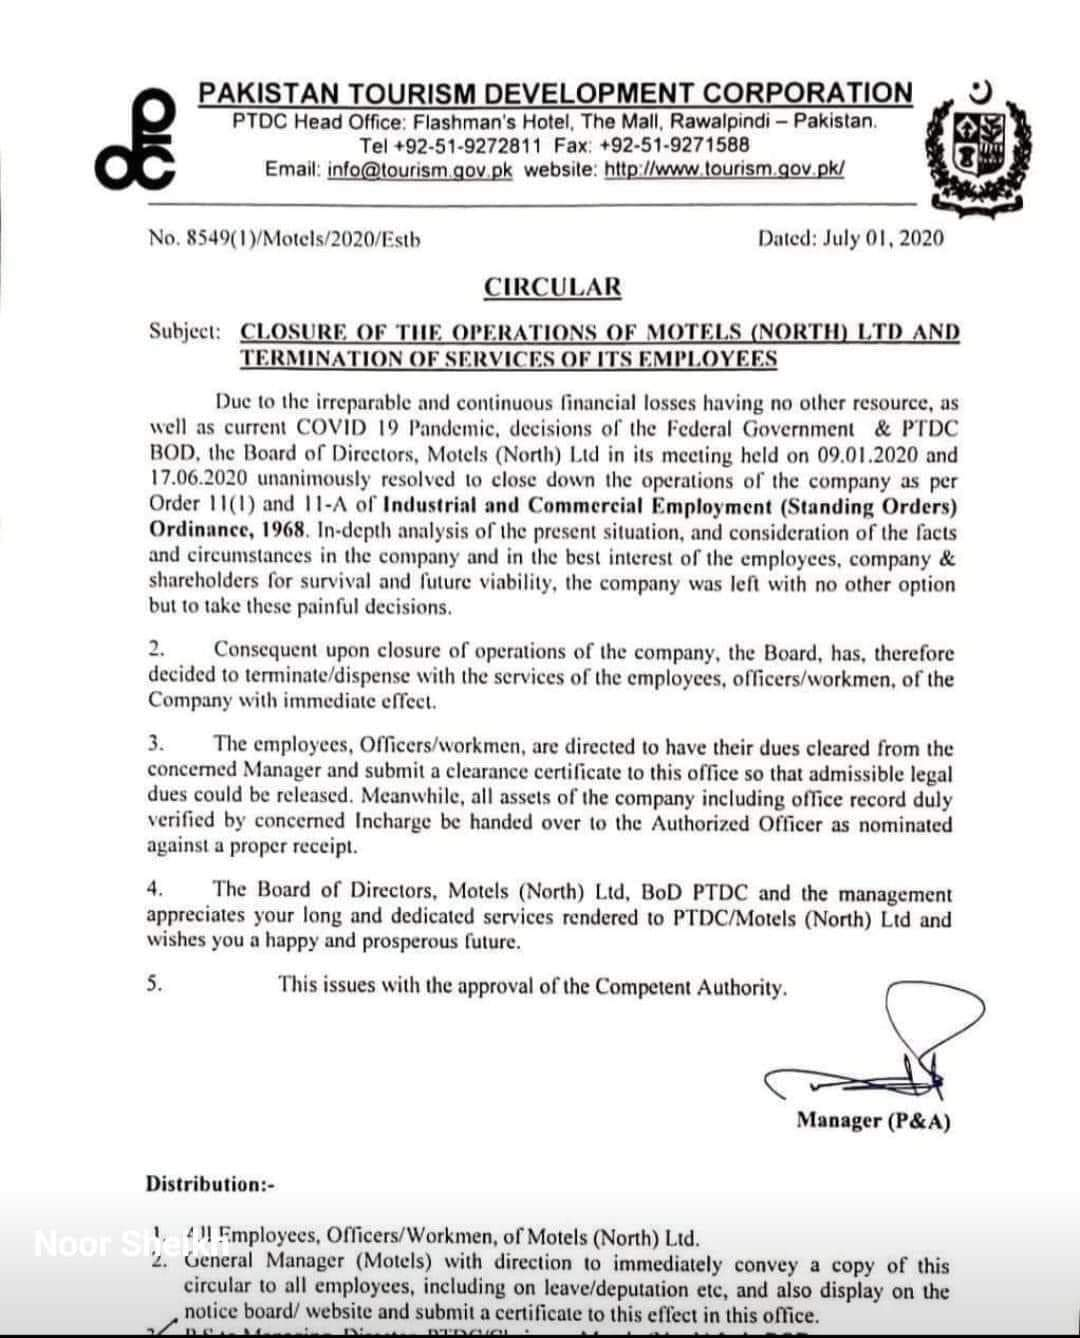 PTDC - The Pakistan Tourism Development Corporation (PTDC) has announced to shut down its Motels in northern areas and terminate the services of its employees, prompting many to raise eyebrows over the incumbent government's intention to promote the tourism industry and additionally when it would also spark further unemployment. As per a Circular released on July 1, the decision to close down the Operations of PTDC Motels in northern Pakistan followed an in-depth analysis of the situation marked by the Coronavirus (COVID-19) pandemic. It was stated that irreparable and continuous financial losses left no option but to take painful decisions resulting in the closure of Motels and termination of services of PTDC employees. Sources said that the PTDC was shutting down its 30 Motels in northern Pakistan; therefore, 320 employees were being laid off.